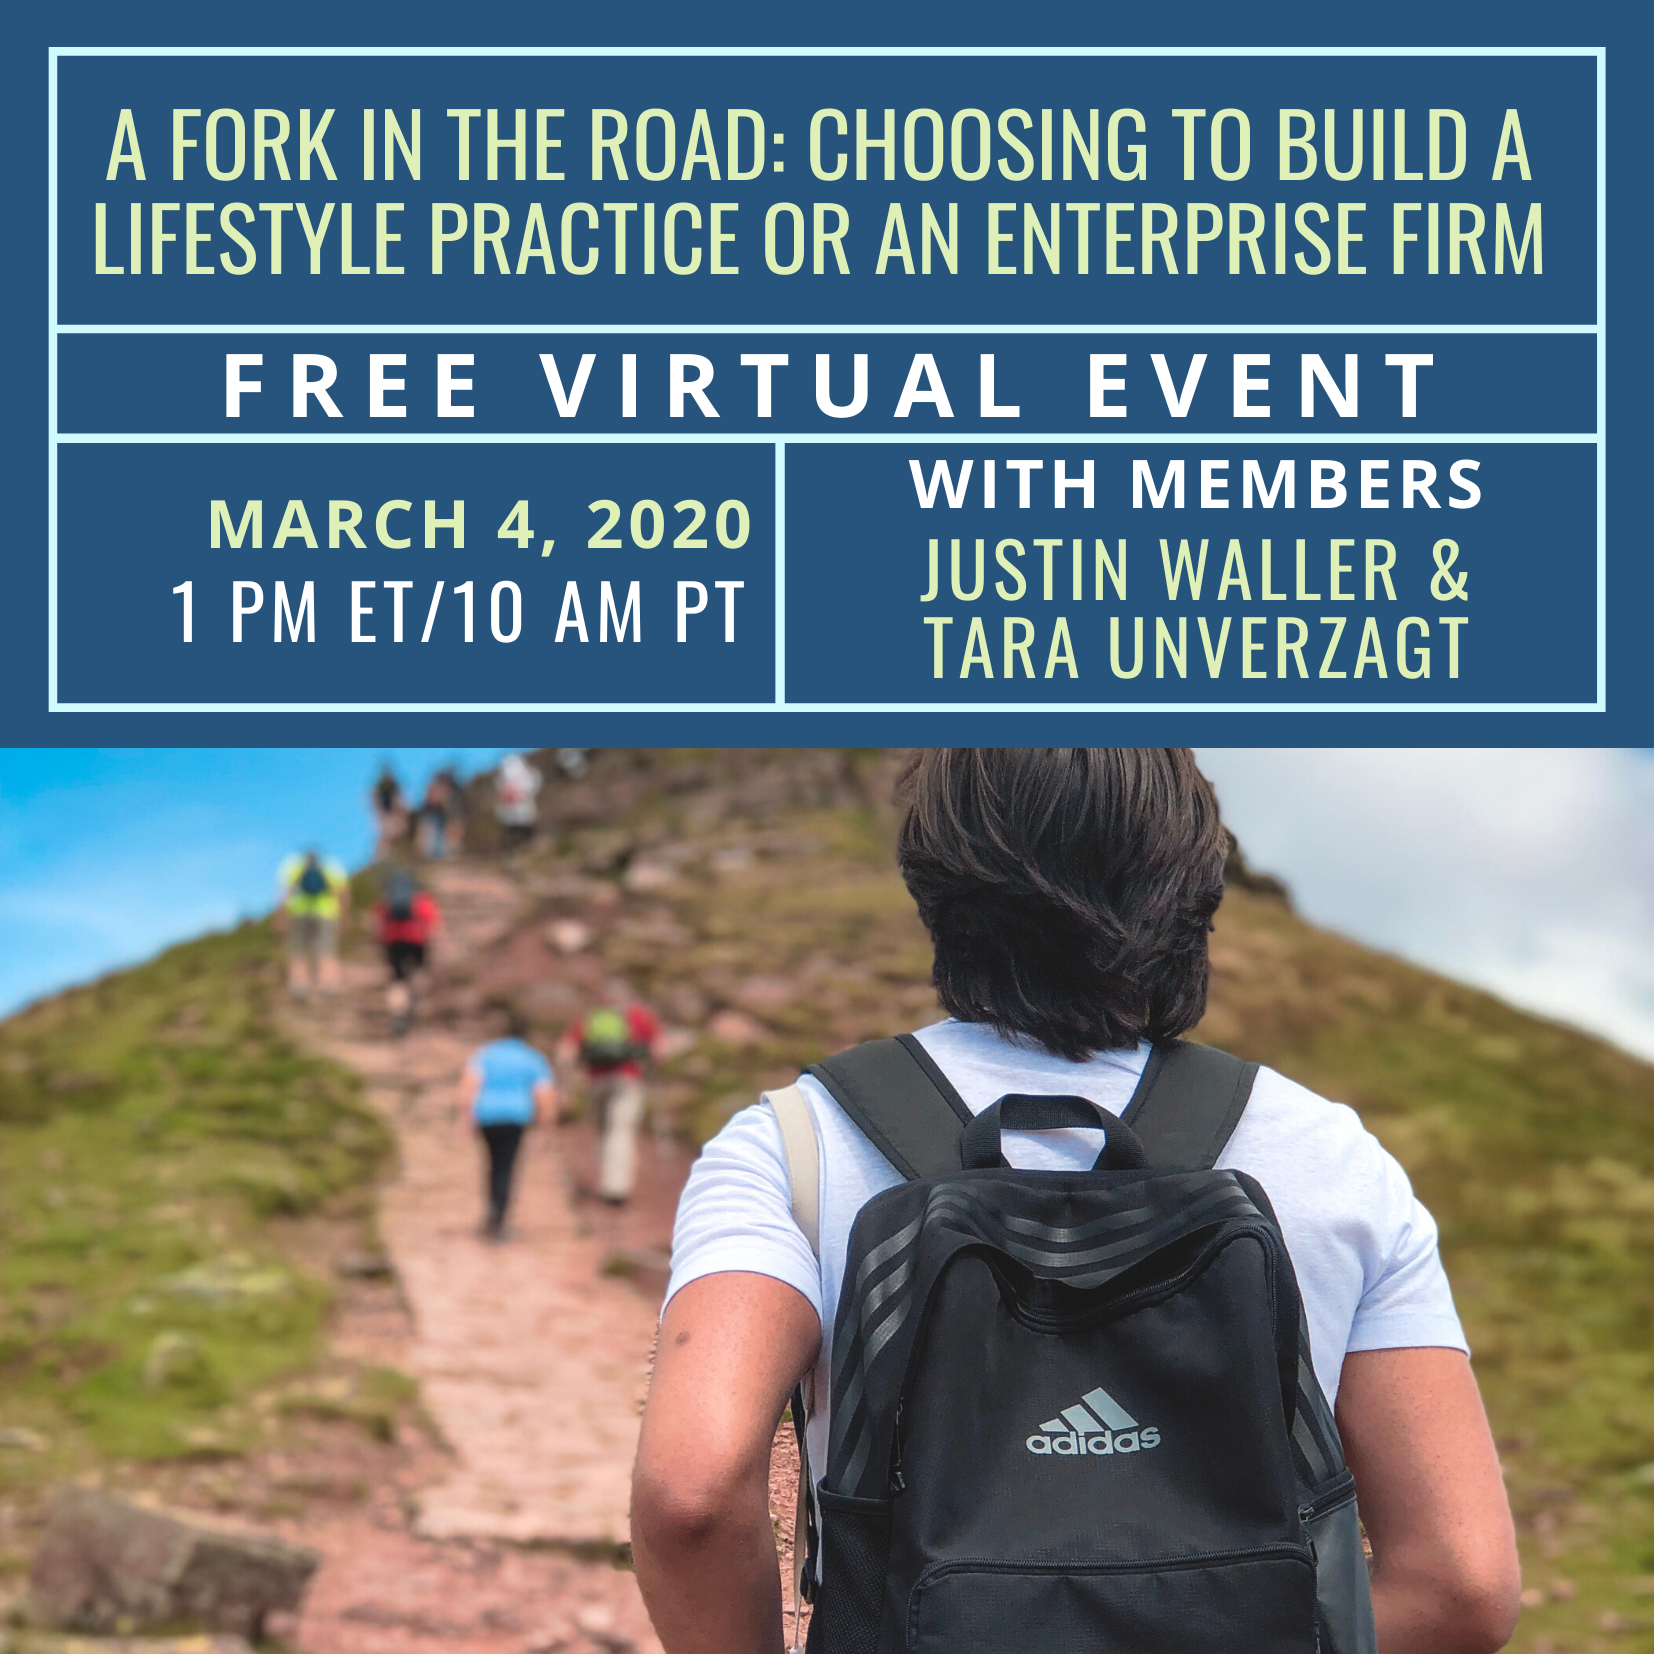 FREE Virtual Event: A Fork in the Road: Choosing to Build a Lifestyle Practice or an Enterprise Firm